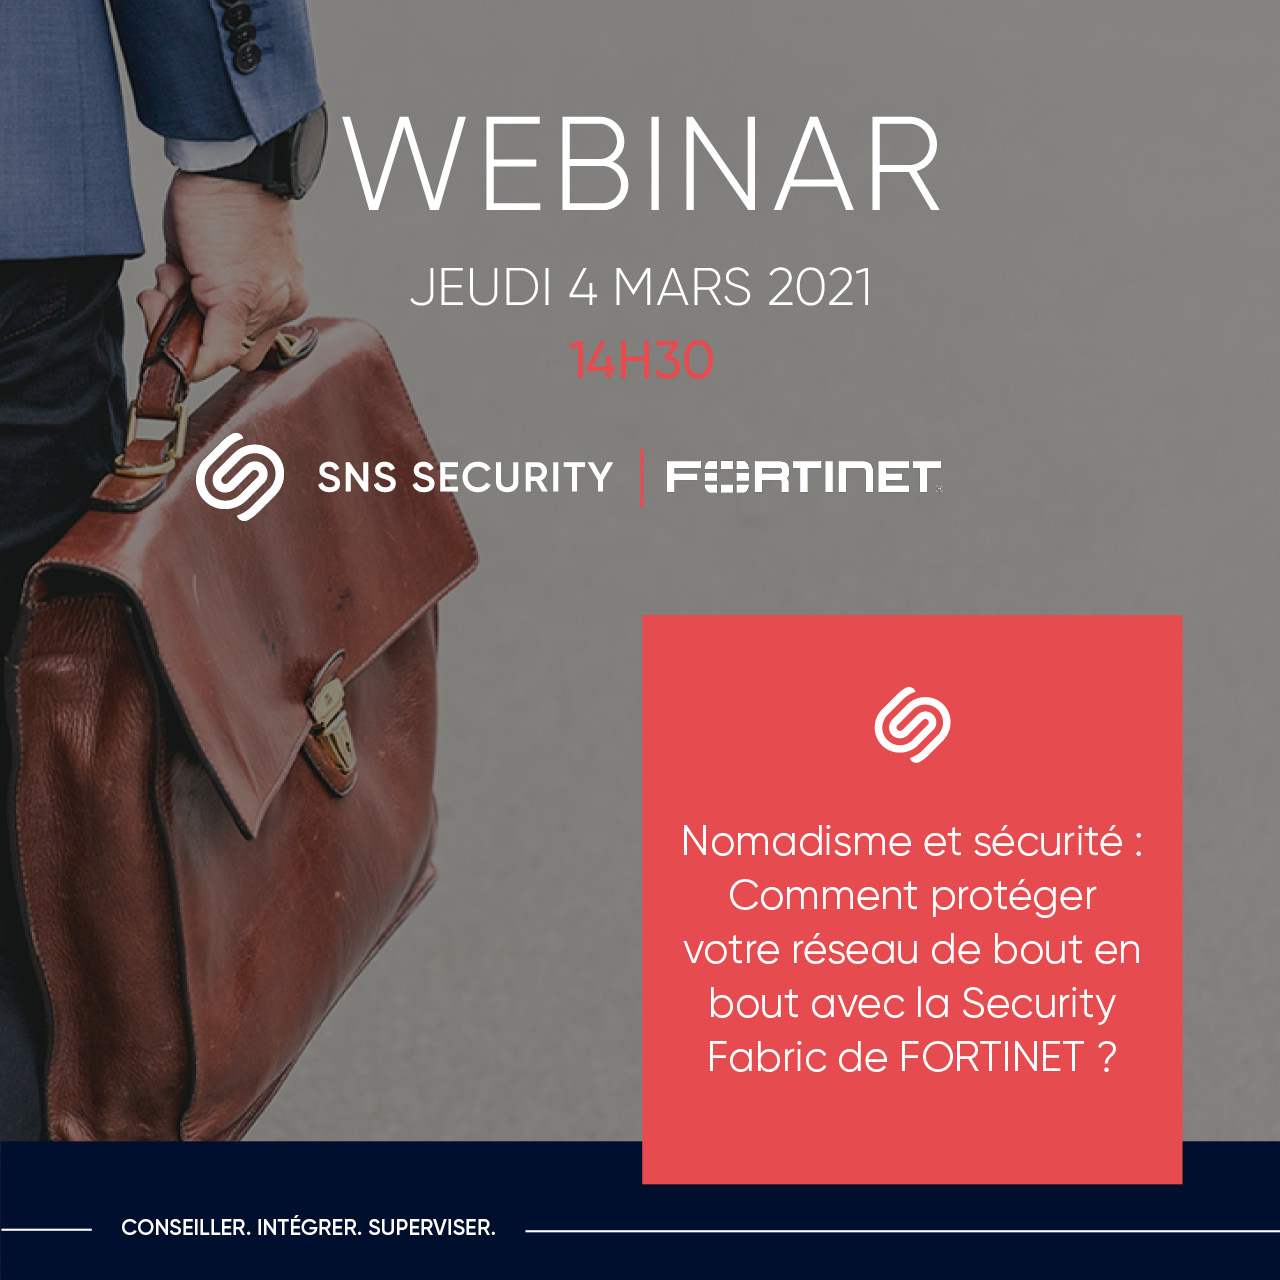 webinar sns security fortinet security fabric nomadisme cybersecurite